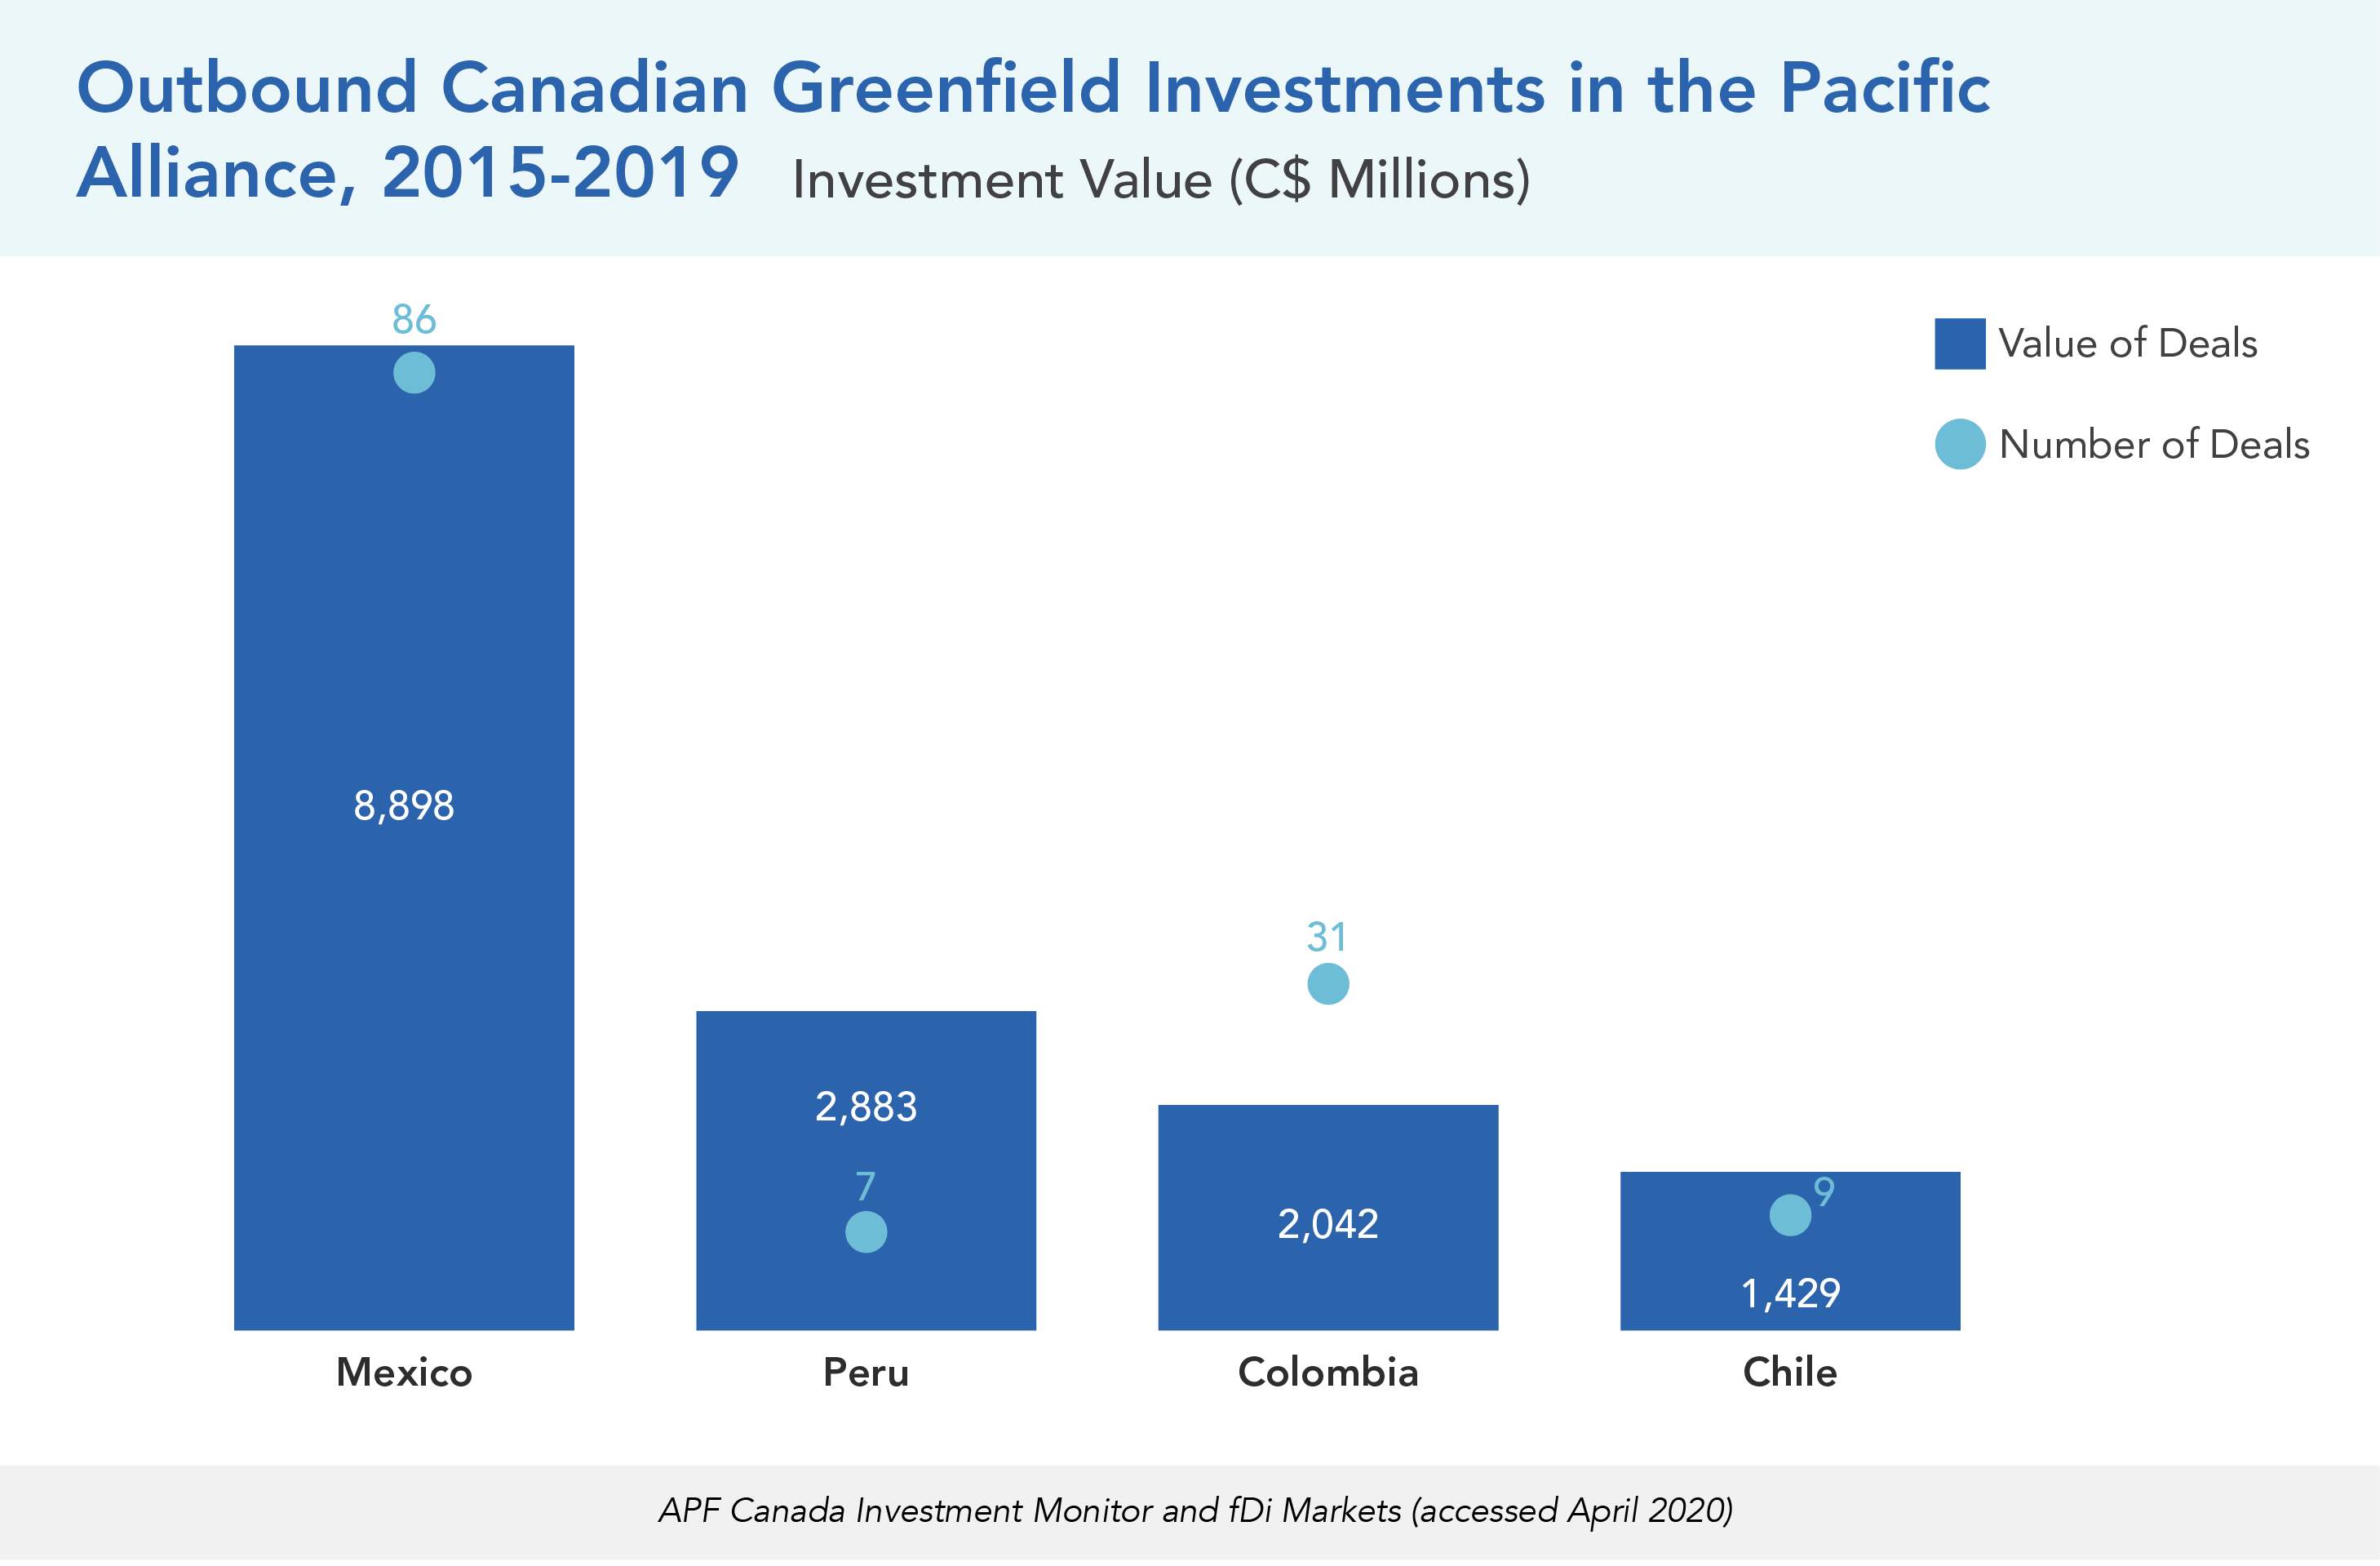 Outbound Canadian Greenfield Investments in the Pacific Alliance, 2015-2019